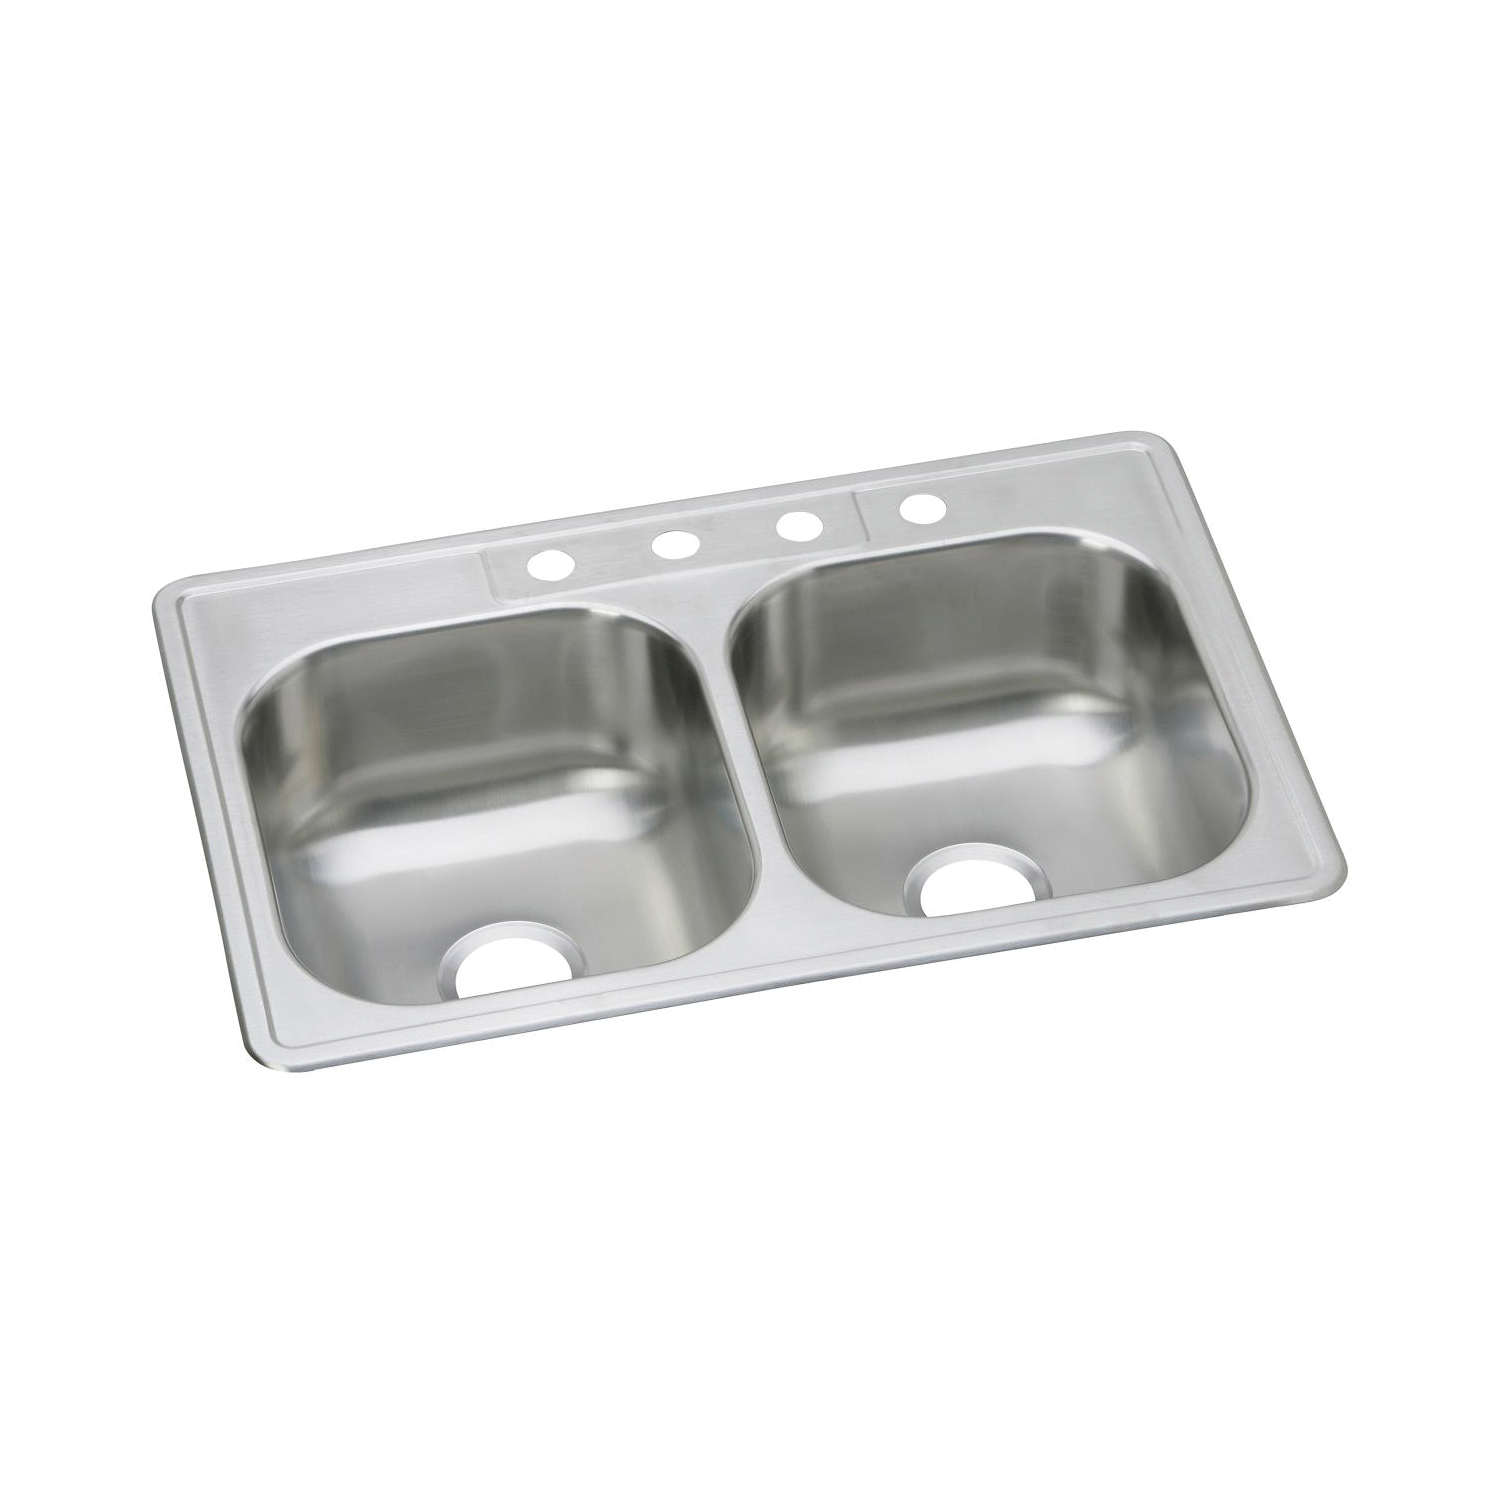 Elkay® DSE233223 Dayton® Kitchen Sink, Rectangular, 3 Faucet Holes, 33 in W x 22 in D x 8-1/16 in H, Top Mount, Stainless Steel, Stainless Steel, Domestic